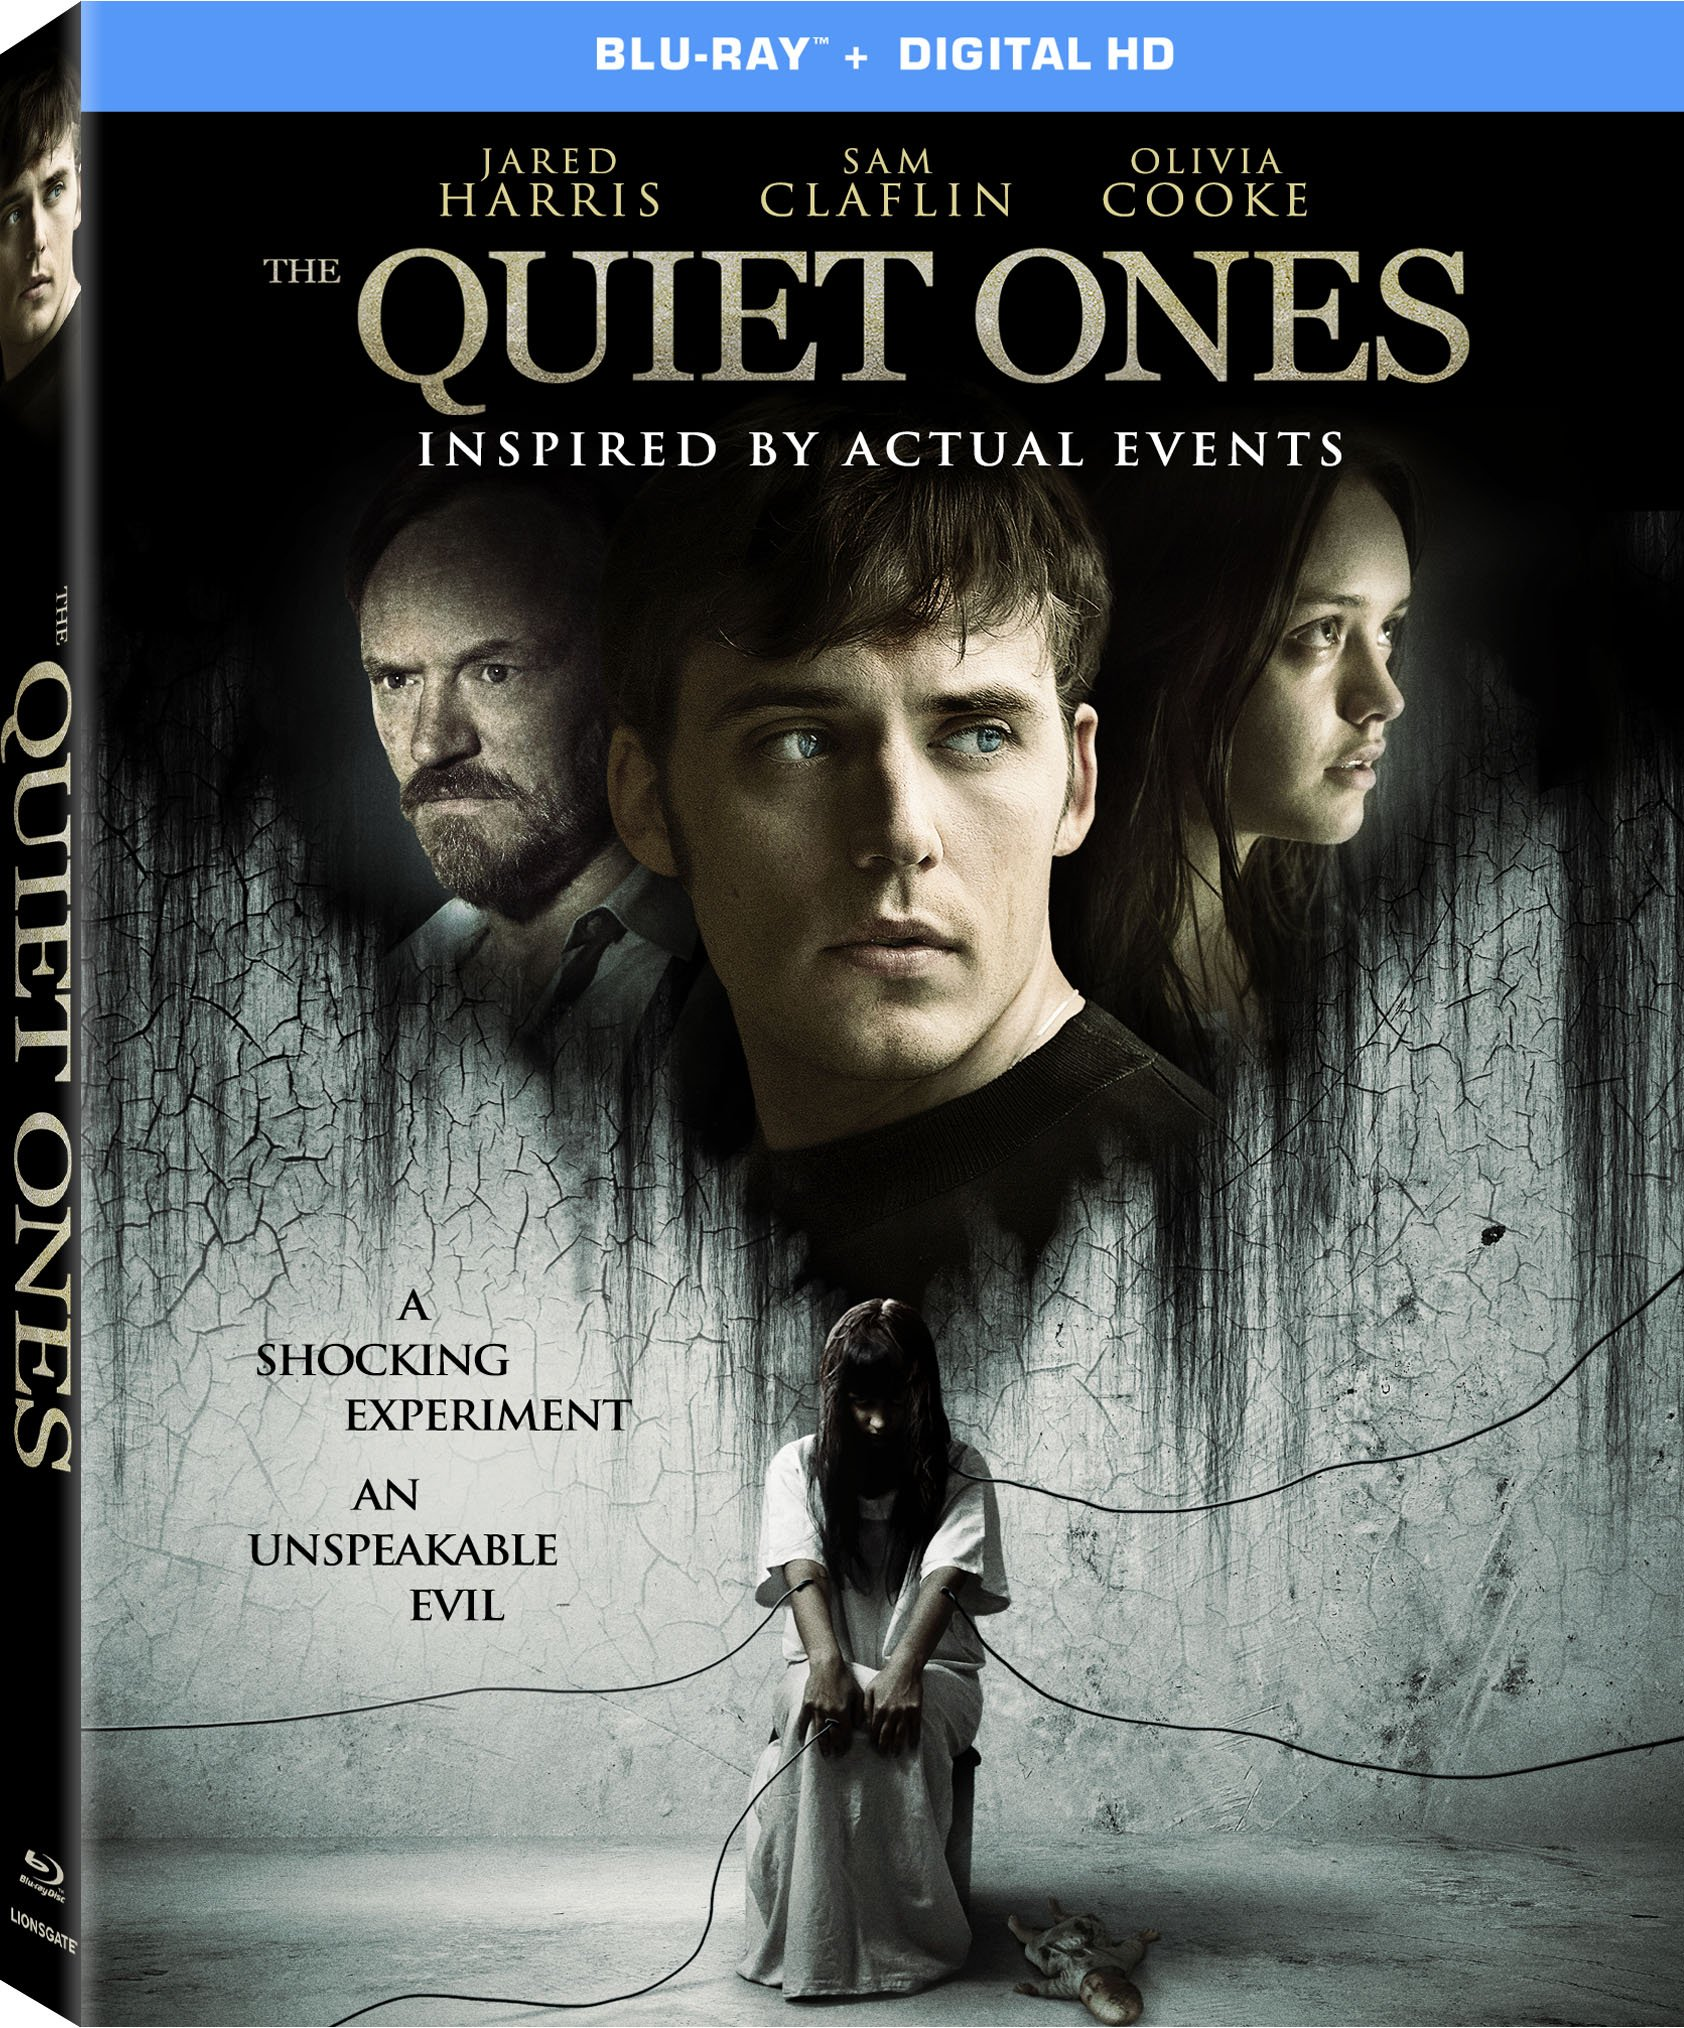 the-quiet-ones-blu-ray-cover-83 - MediaMikes